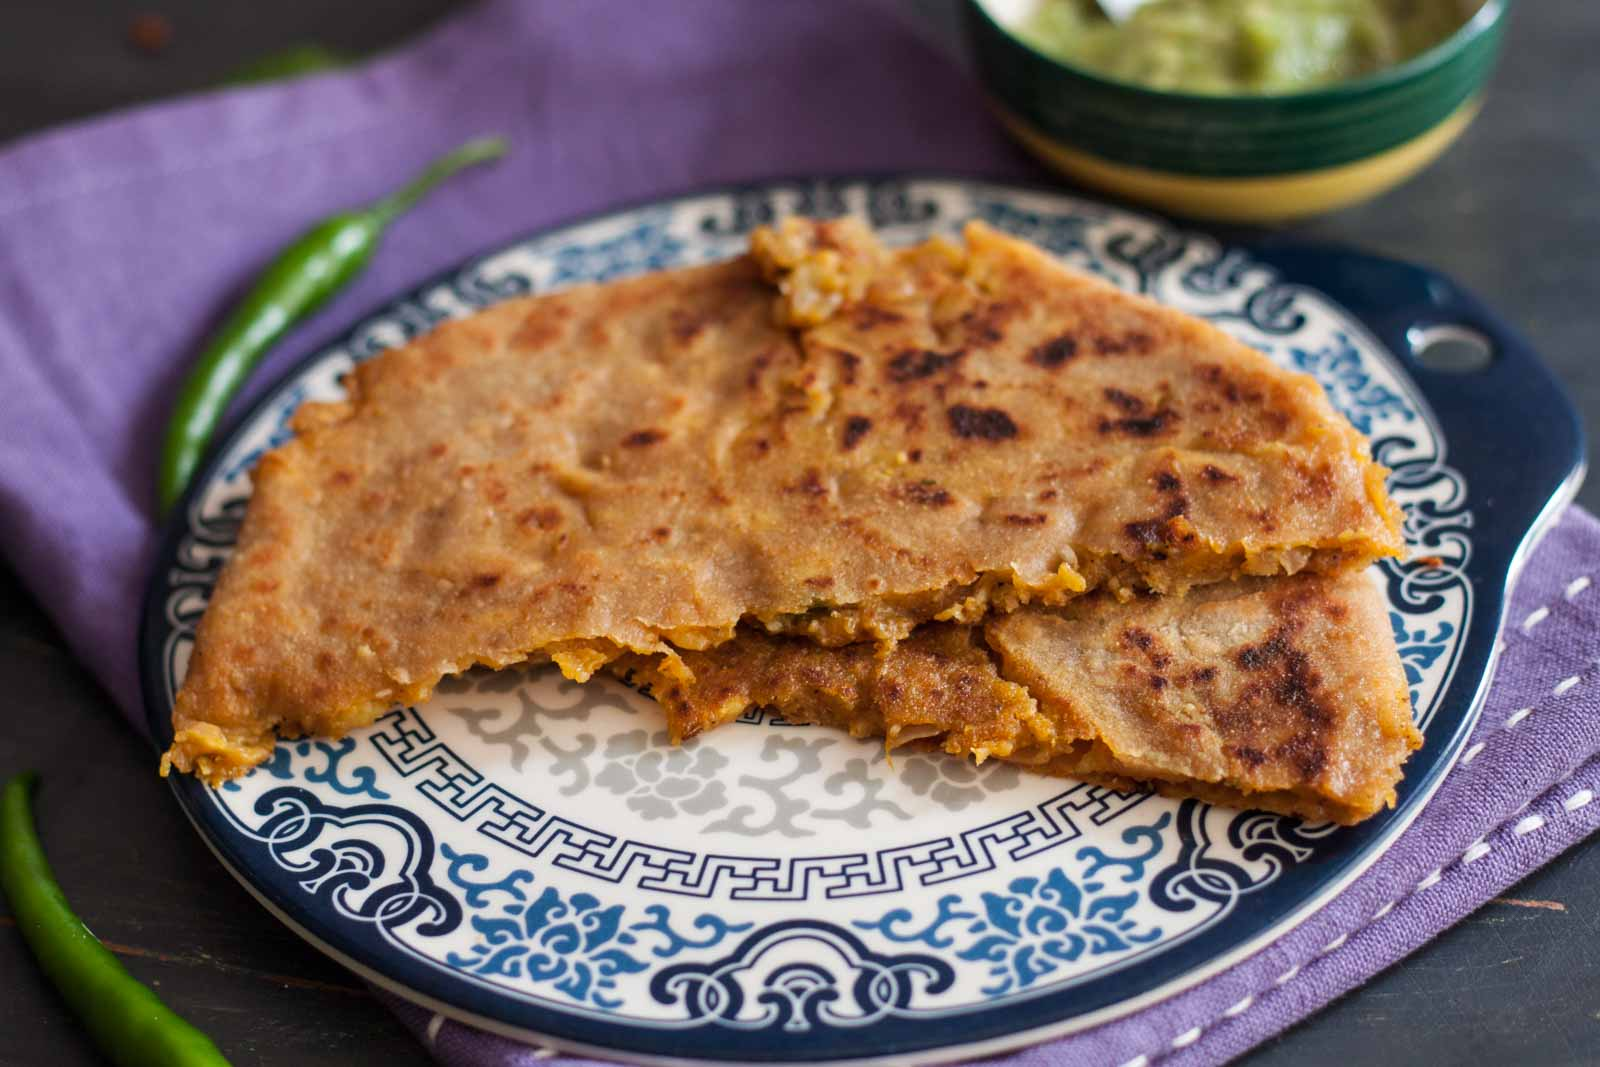 Cheesy aloo paratha recipe by archanas kitchen cheesy aloo paratha recipe forumfinder Image collections